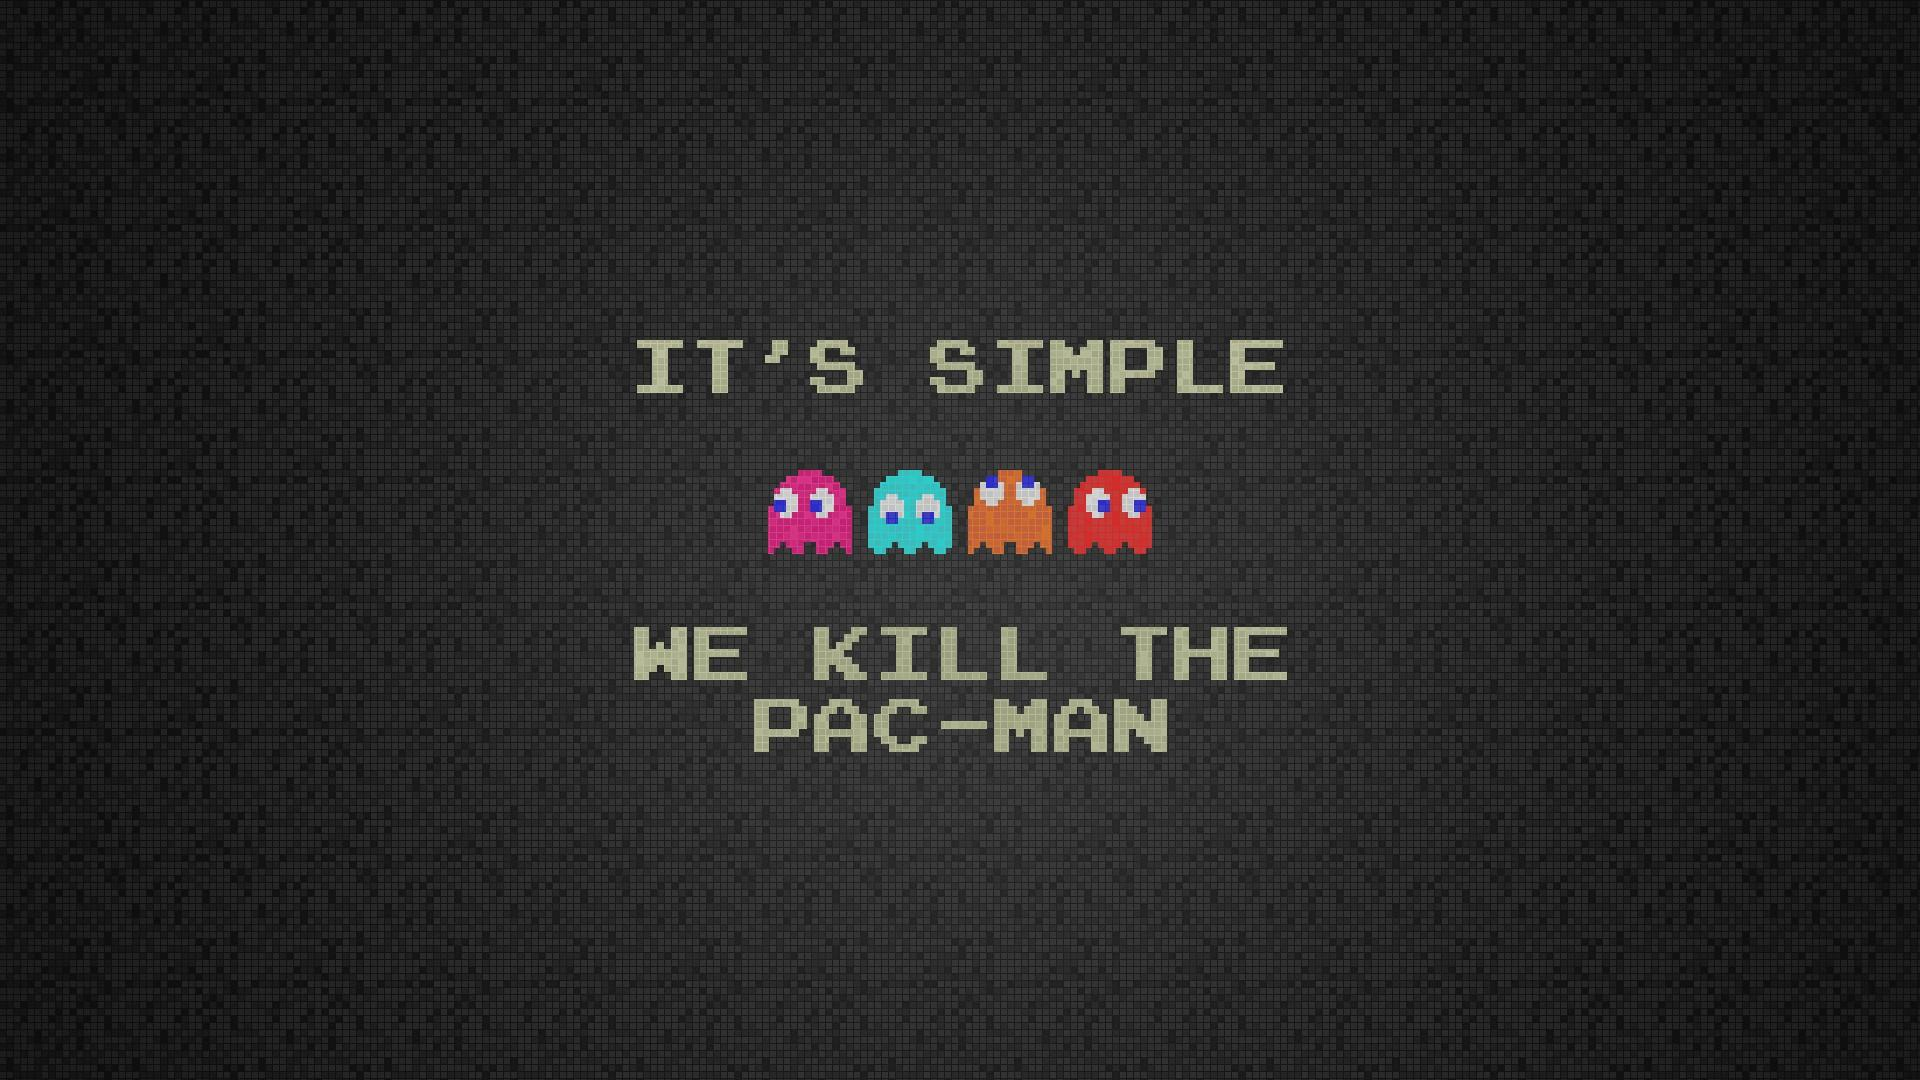 video games text humor cubes Pac-Man squares retro games pixel art kill - Wallpaper (#1776871) / Wallbase.cc